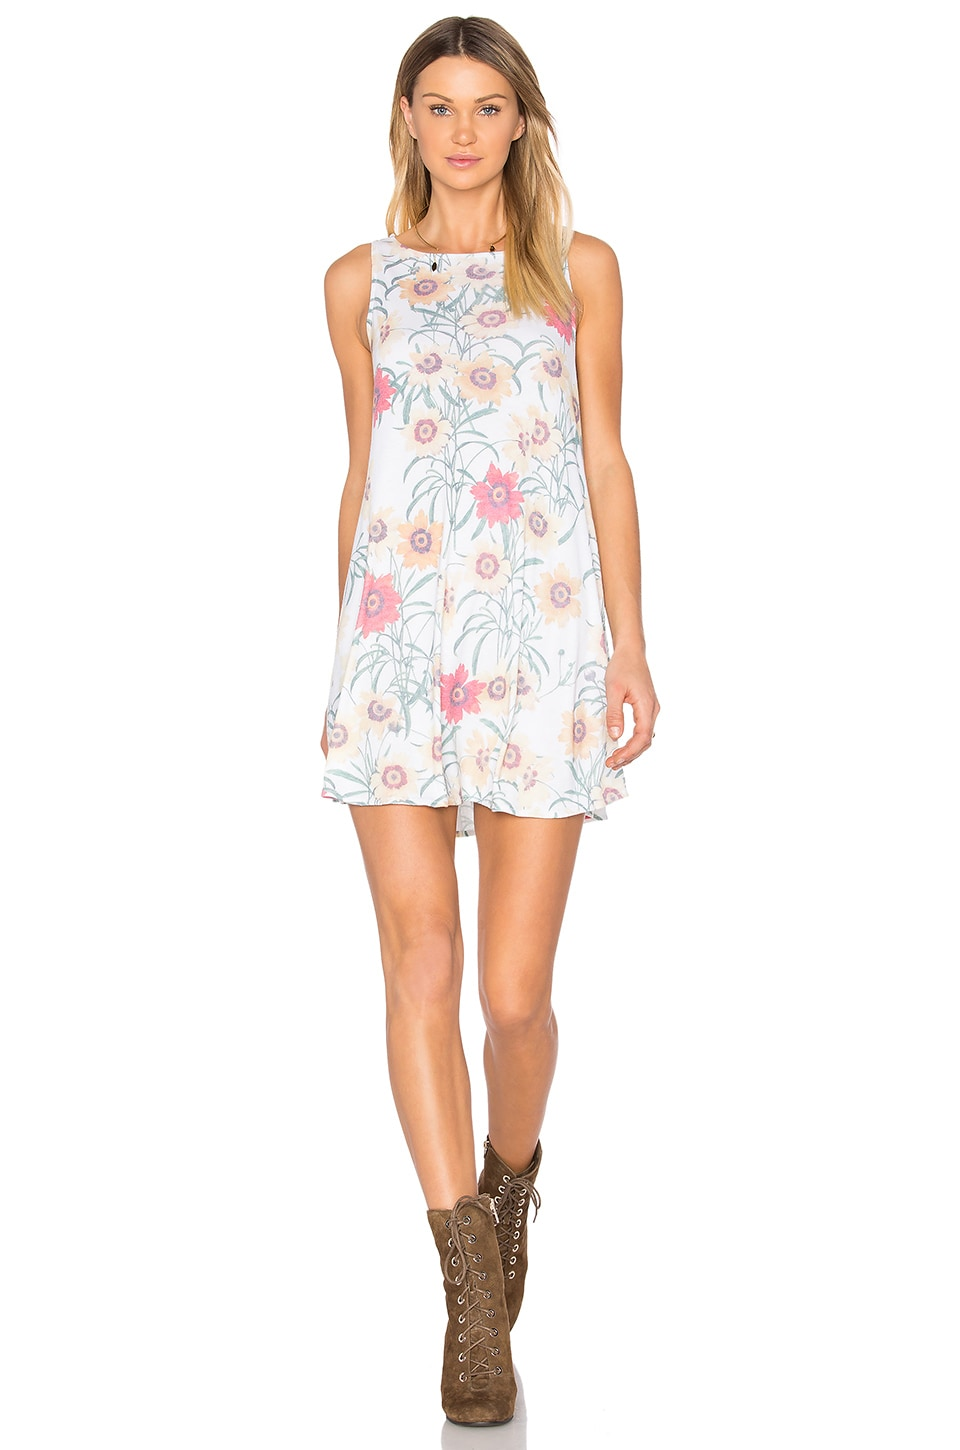 Wild Daisy Tank Dress by Wildfox Couture